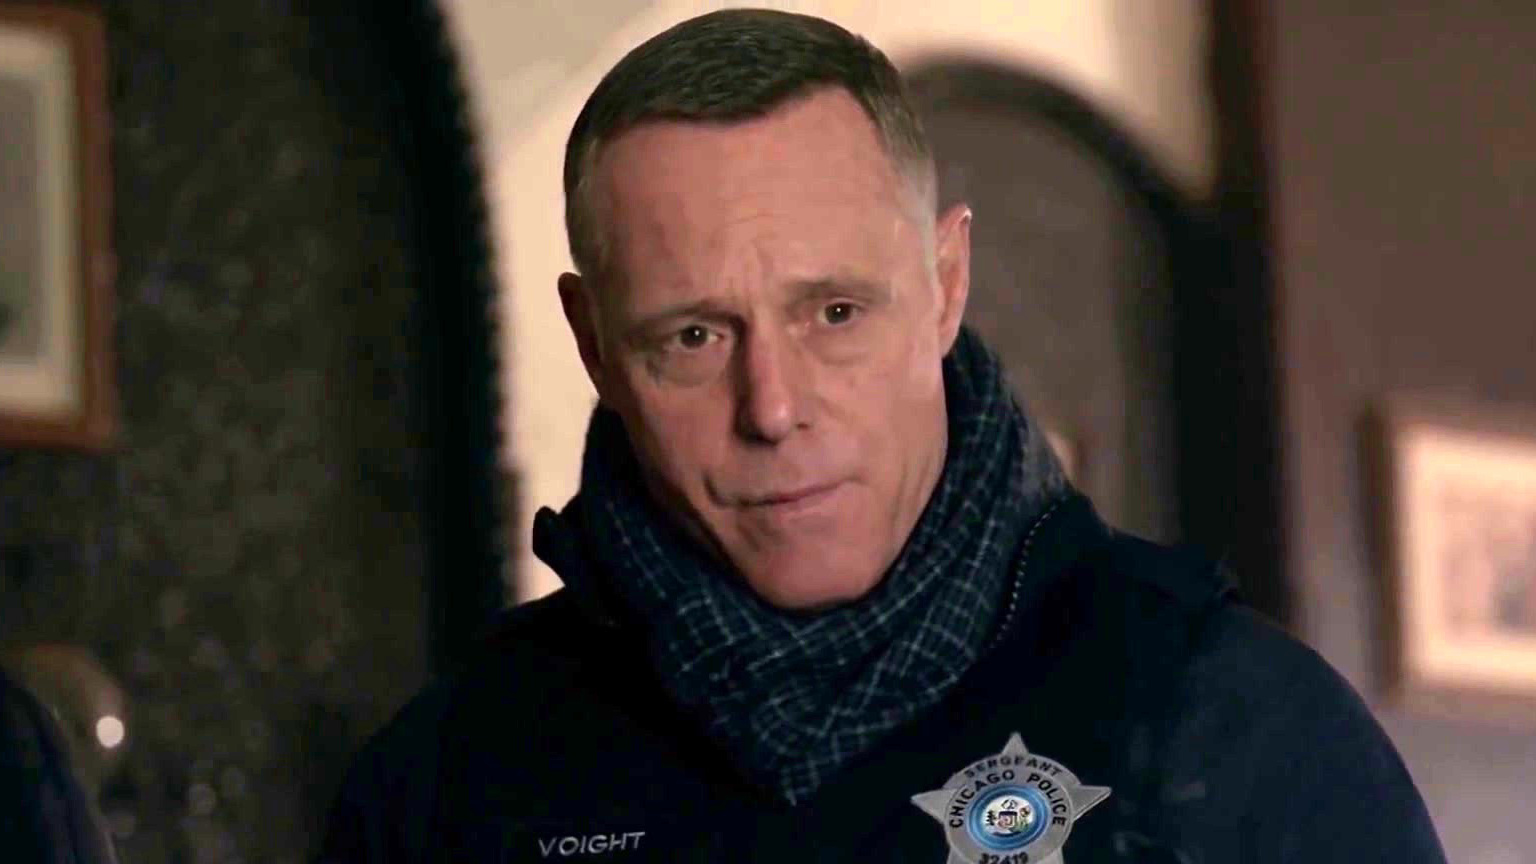 Chicago P.D.: Voight And Team Show Up To Deal With A Potential Perp And Find A Tweaker